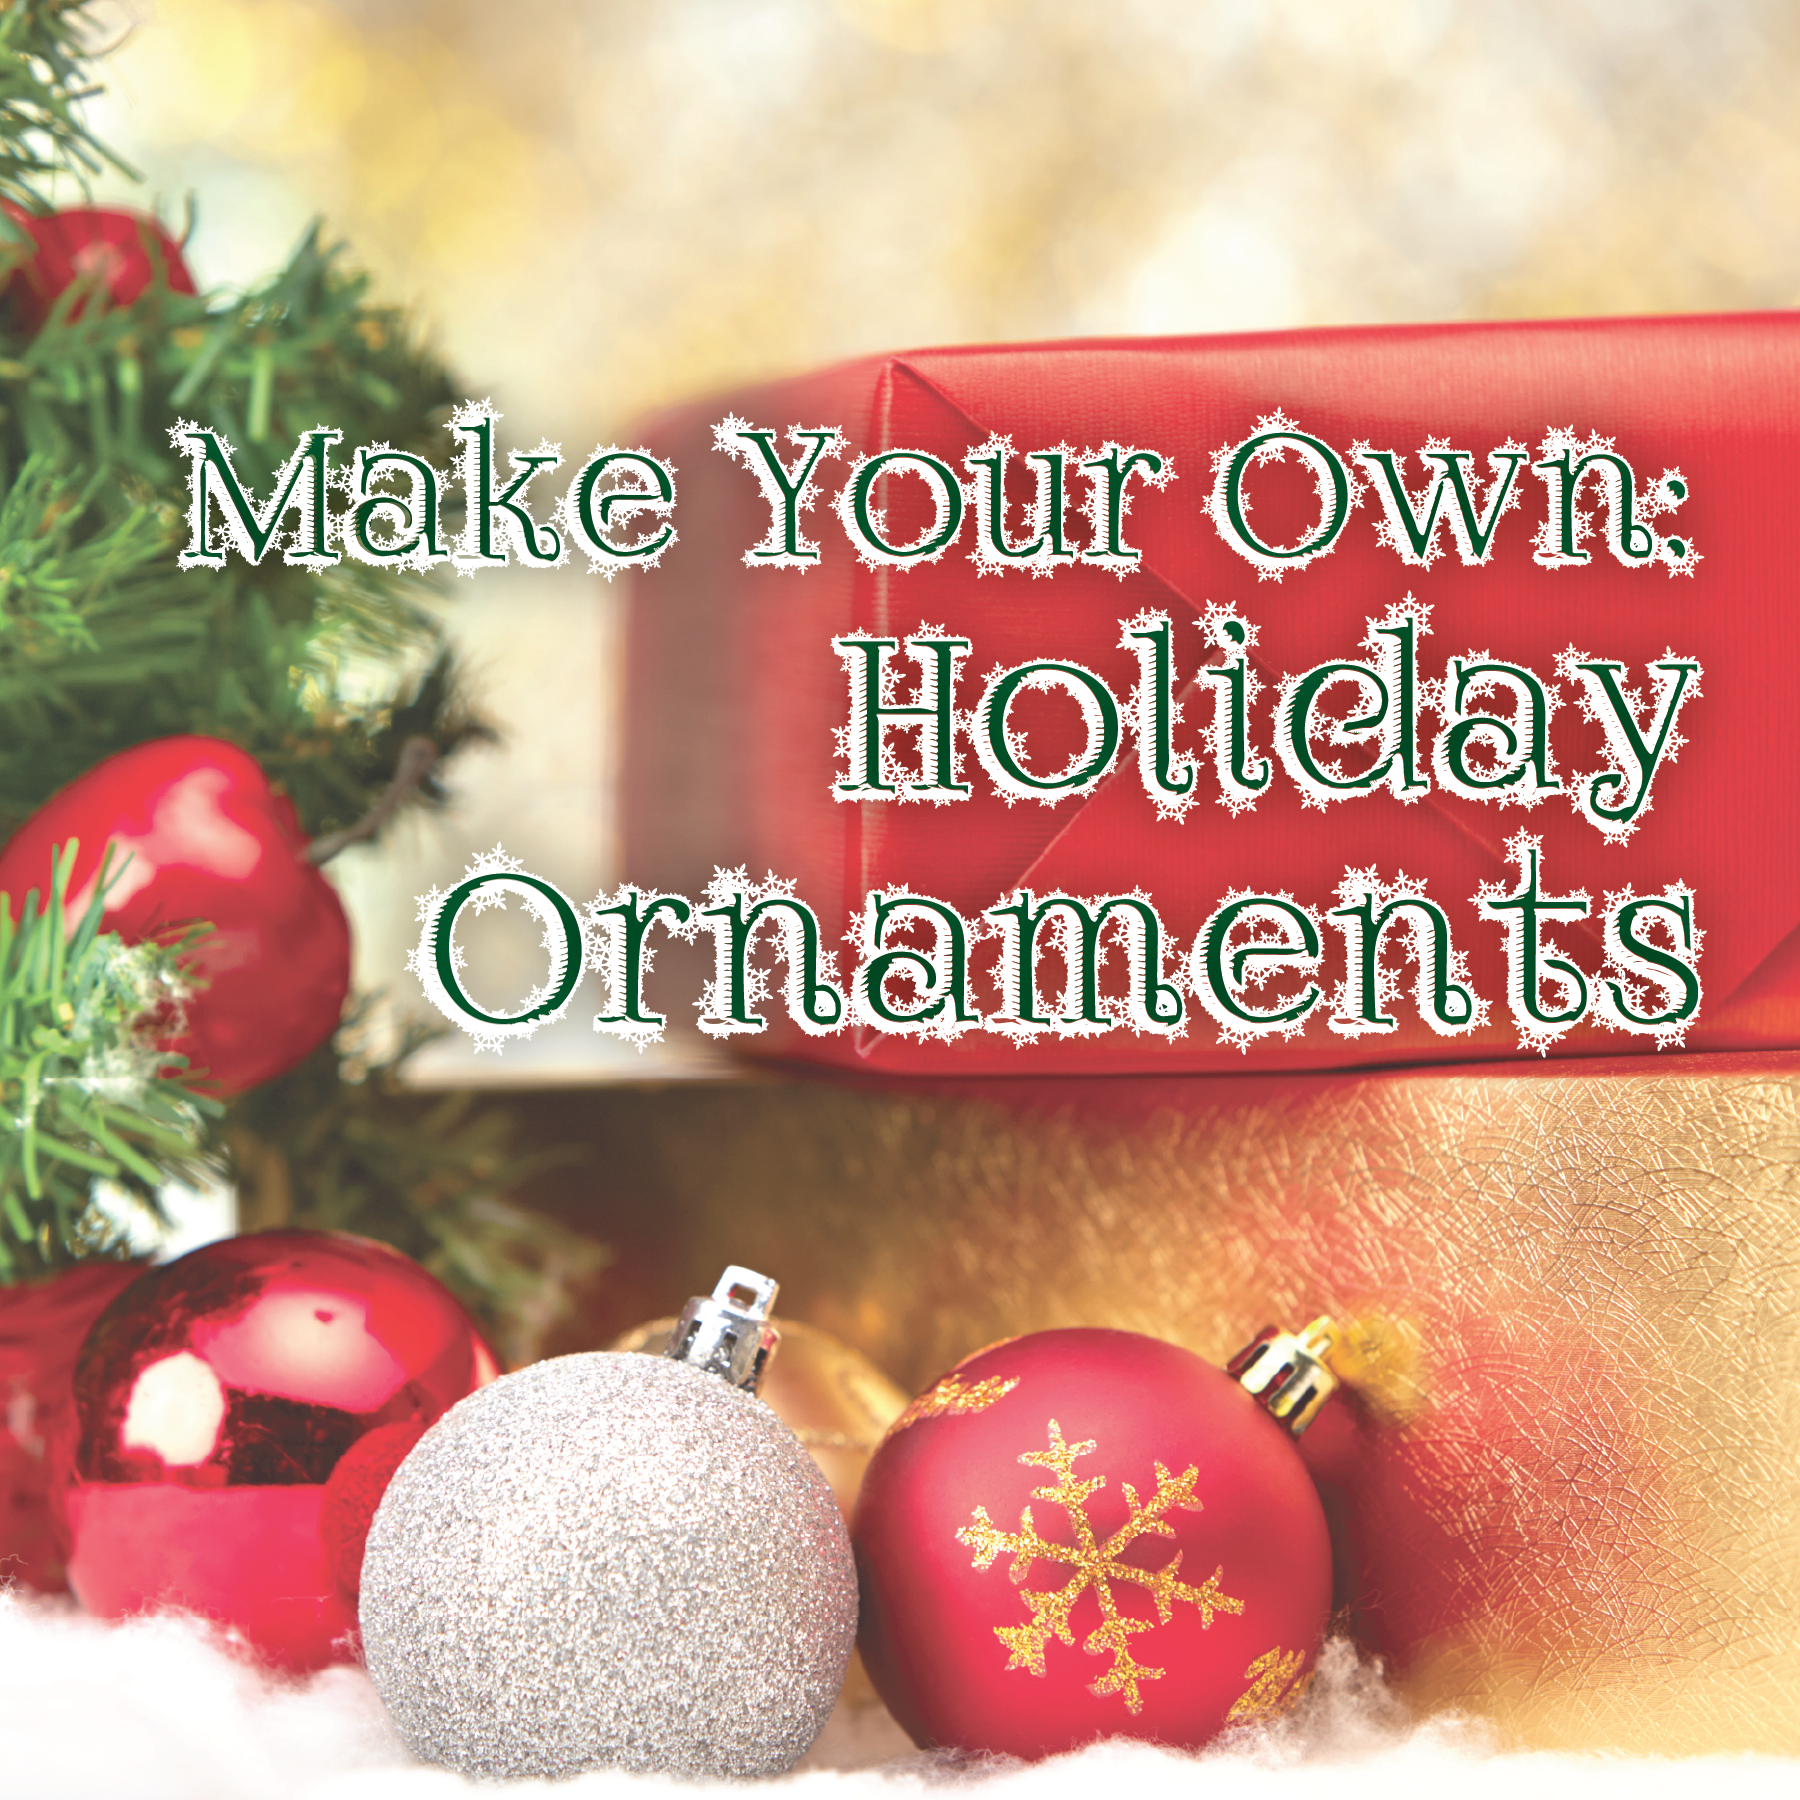 Making Holiday Ornaments